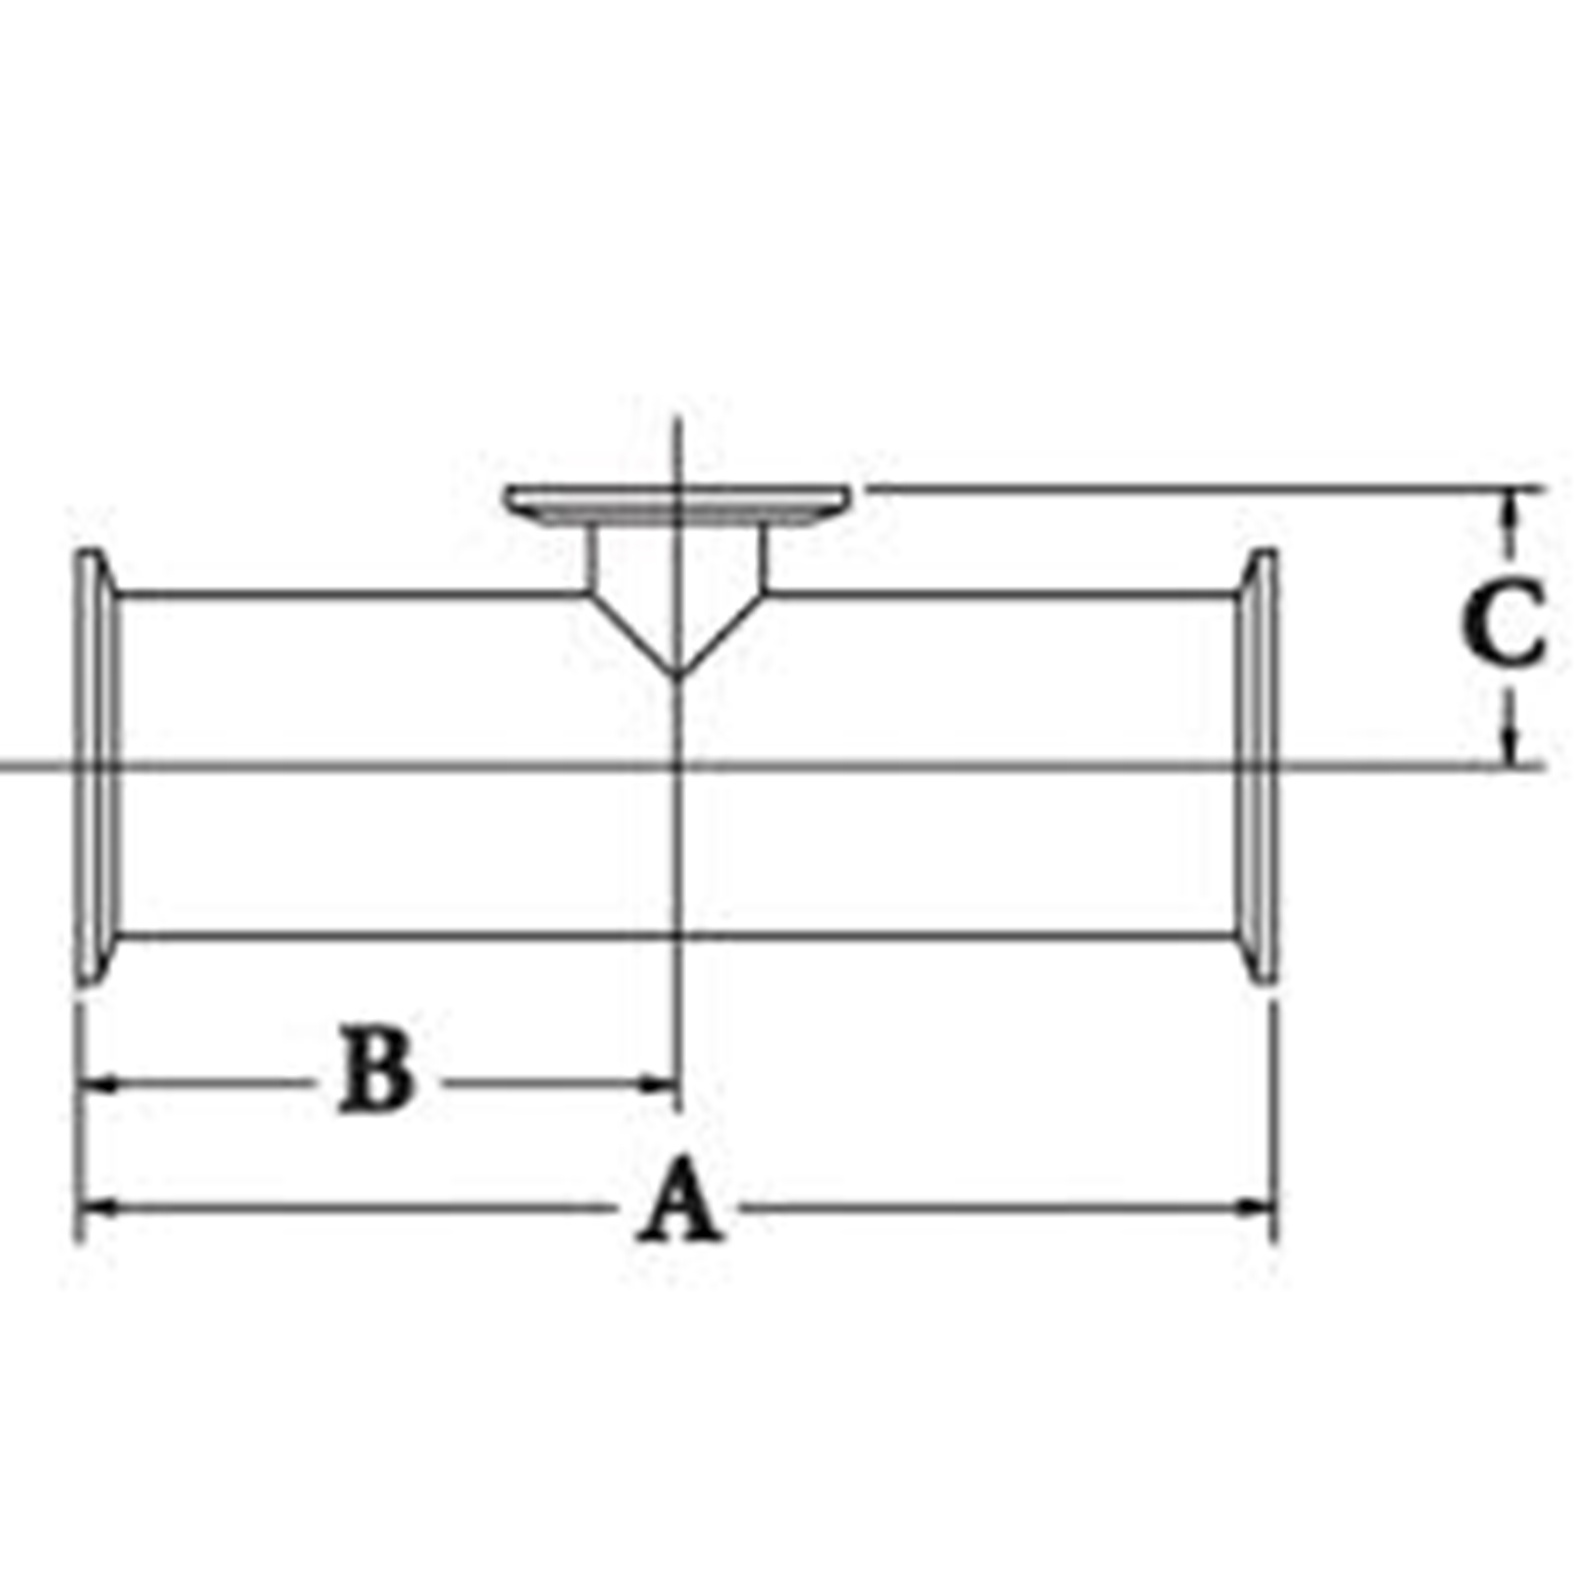 Sanitary Clamp Short Reducing Tee Dimensions